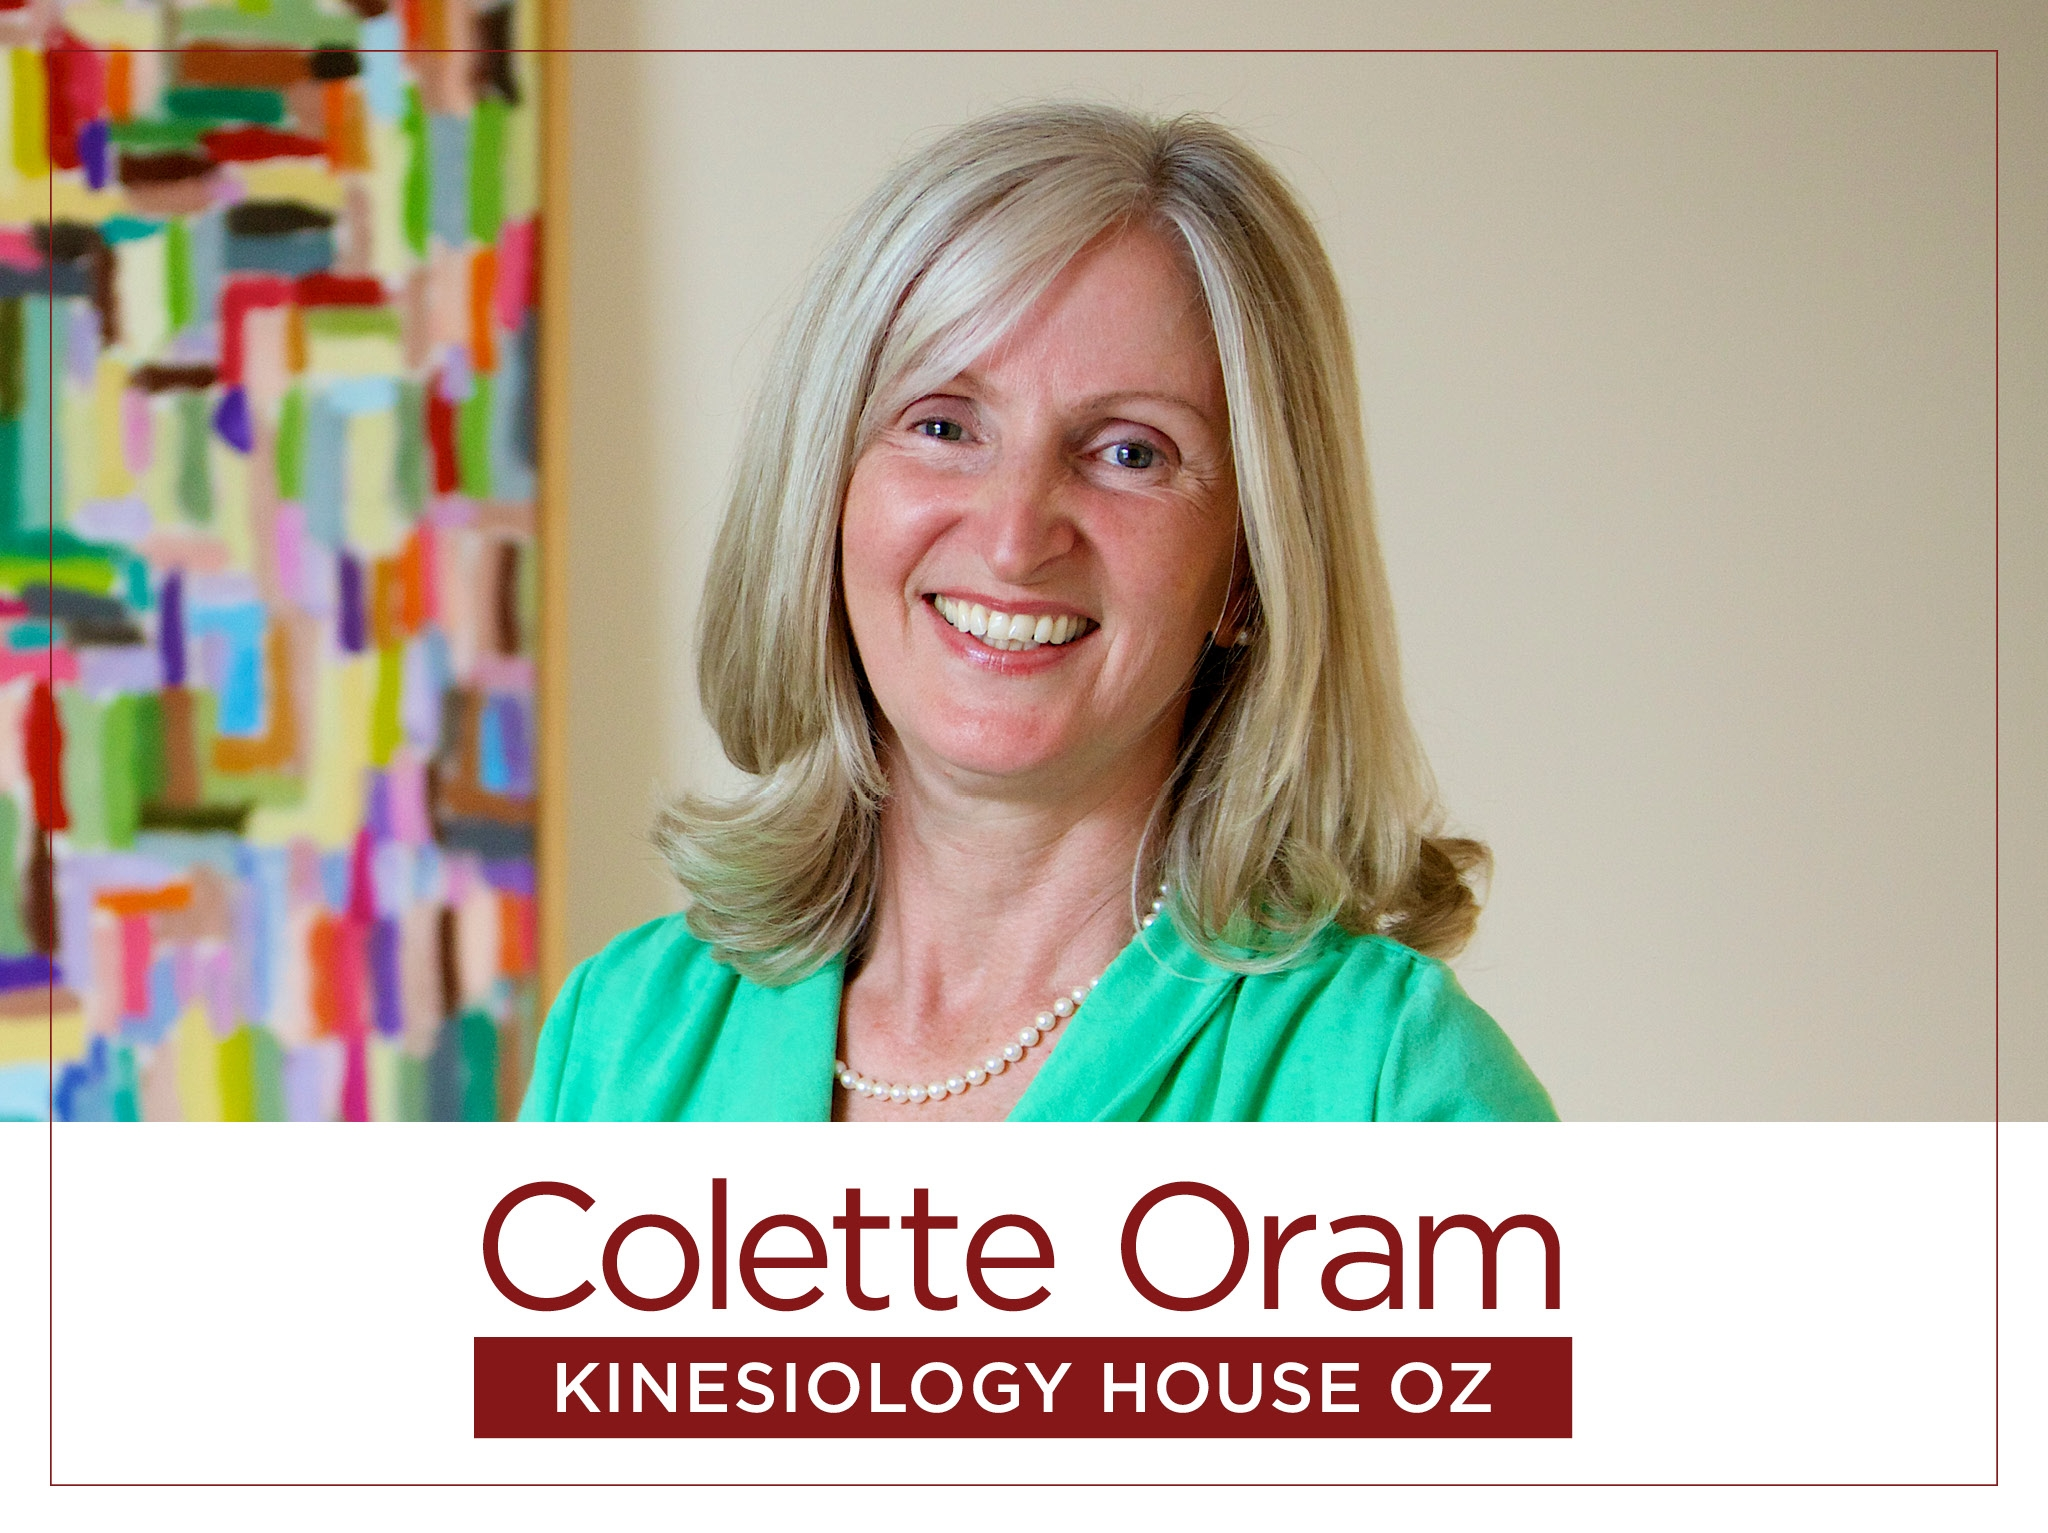 Colette Oram Kinesiology and Yoga